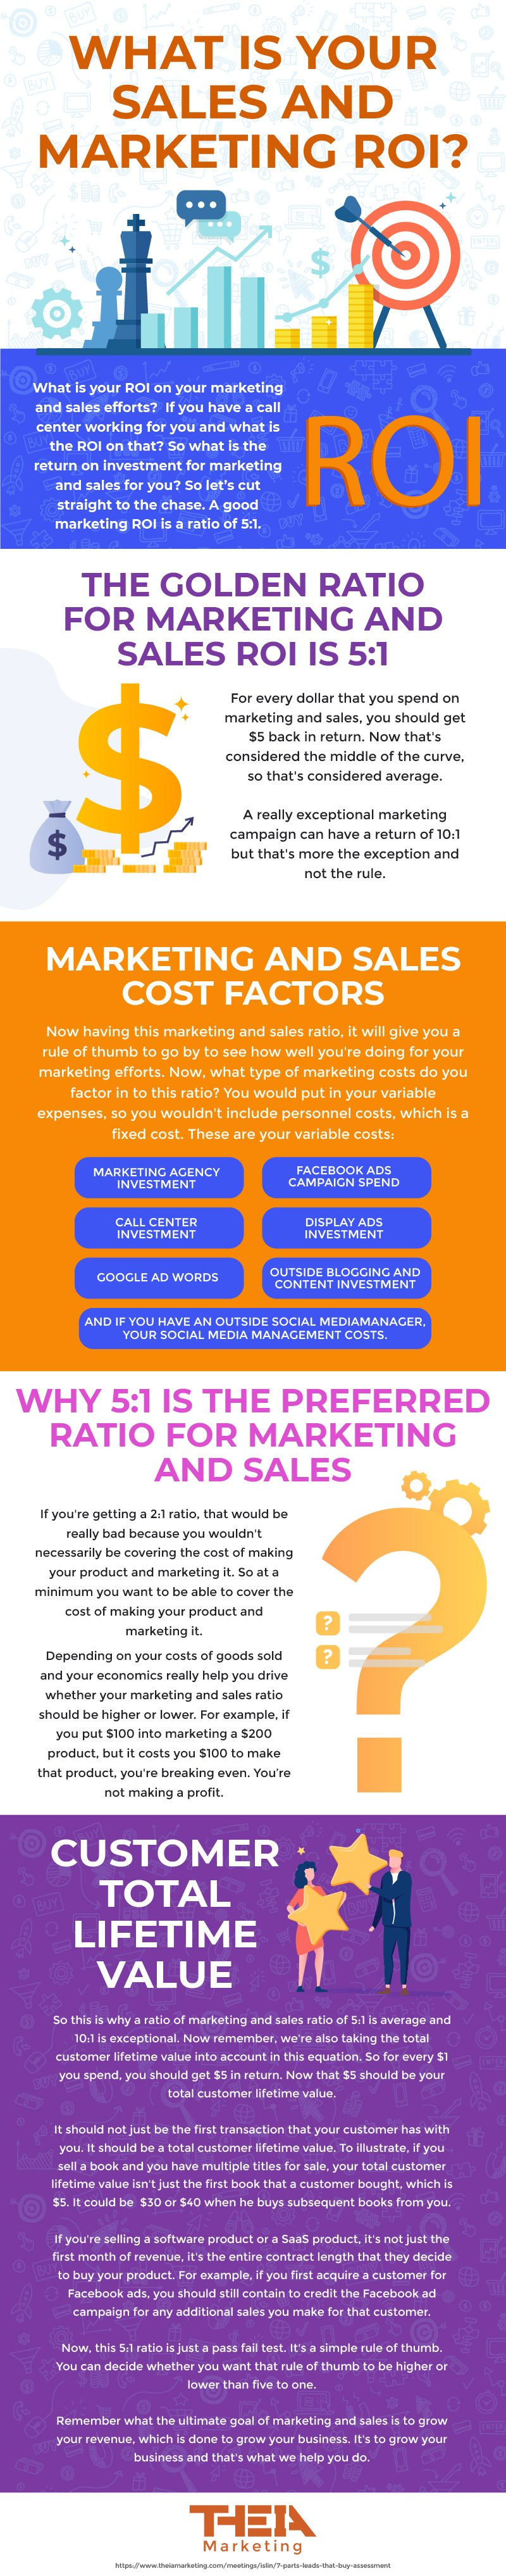 555936_ROI on Sales and Marketing Infographic_101019